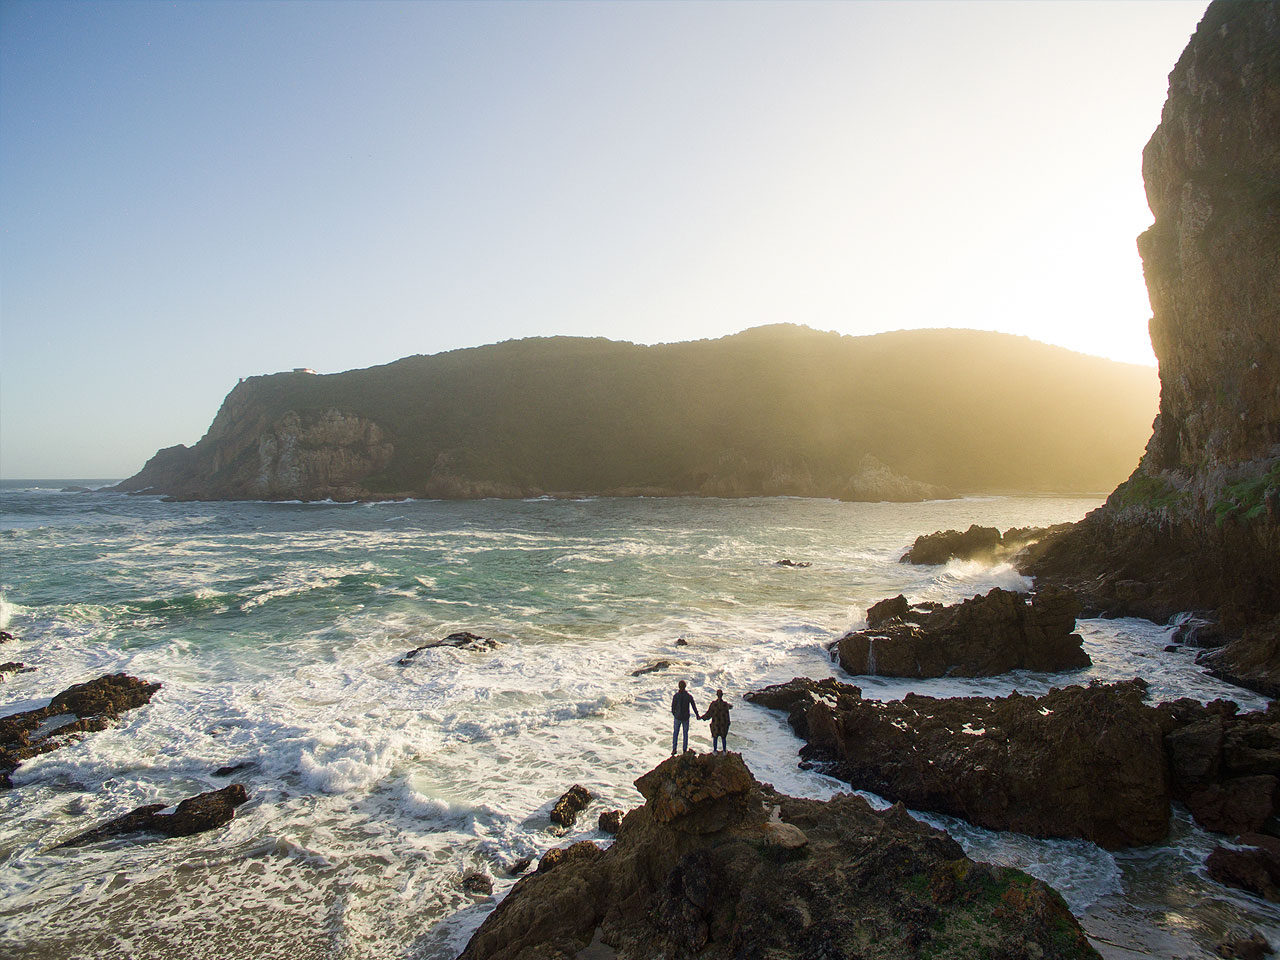 Two people holding hands on the rocks in the shore break at the base of the cliffs looking onto cliffs in the distance.